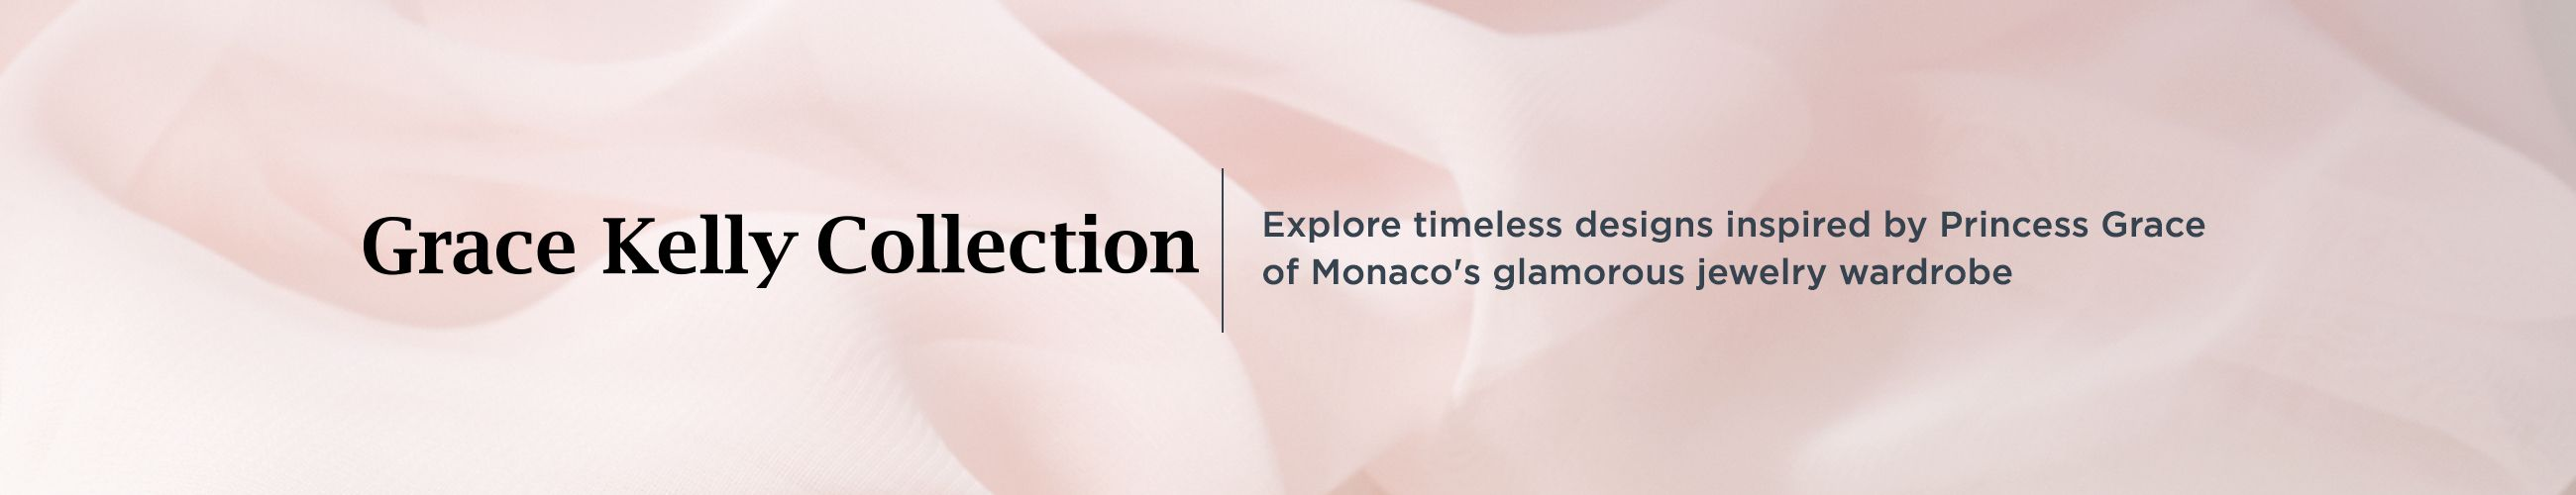 Grace Kelly Collection. Explore timeless designs inspired by Princess Grace of Monaco's glamorous jewelry wardrobe